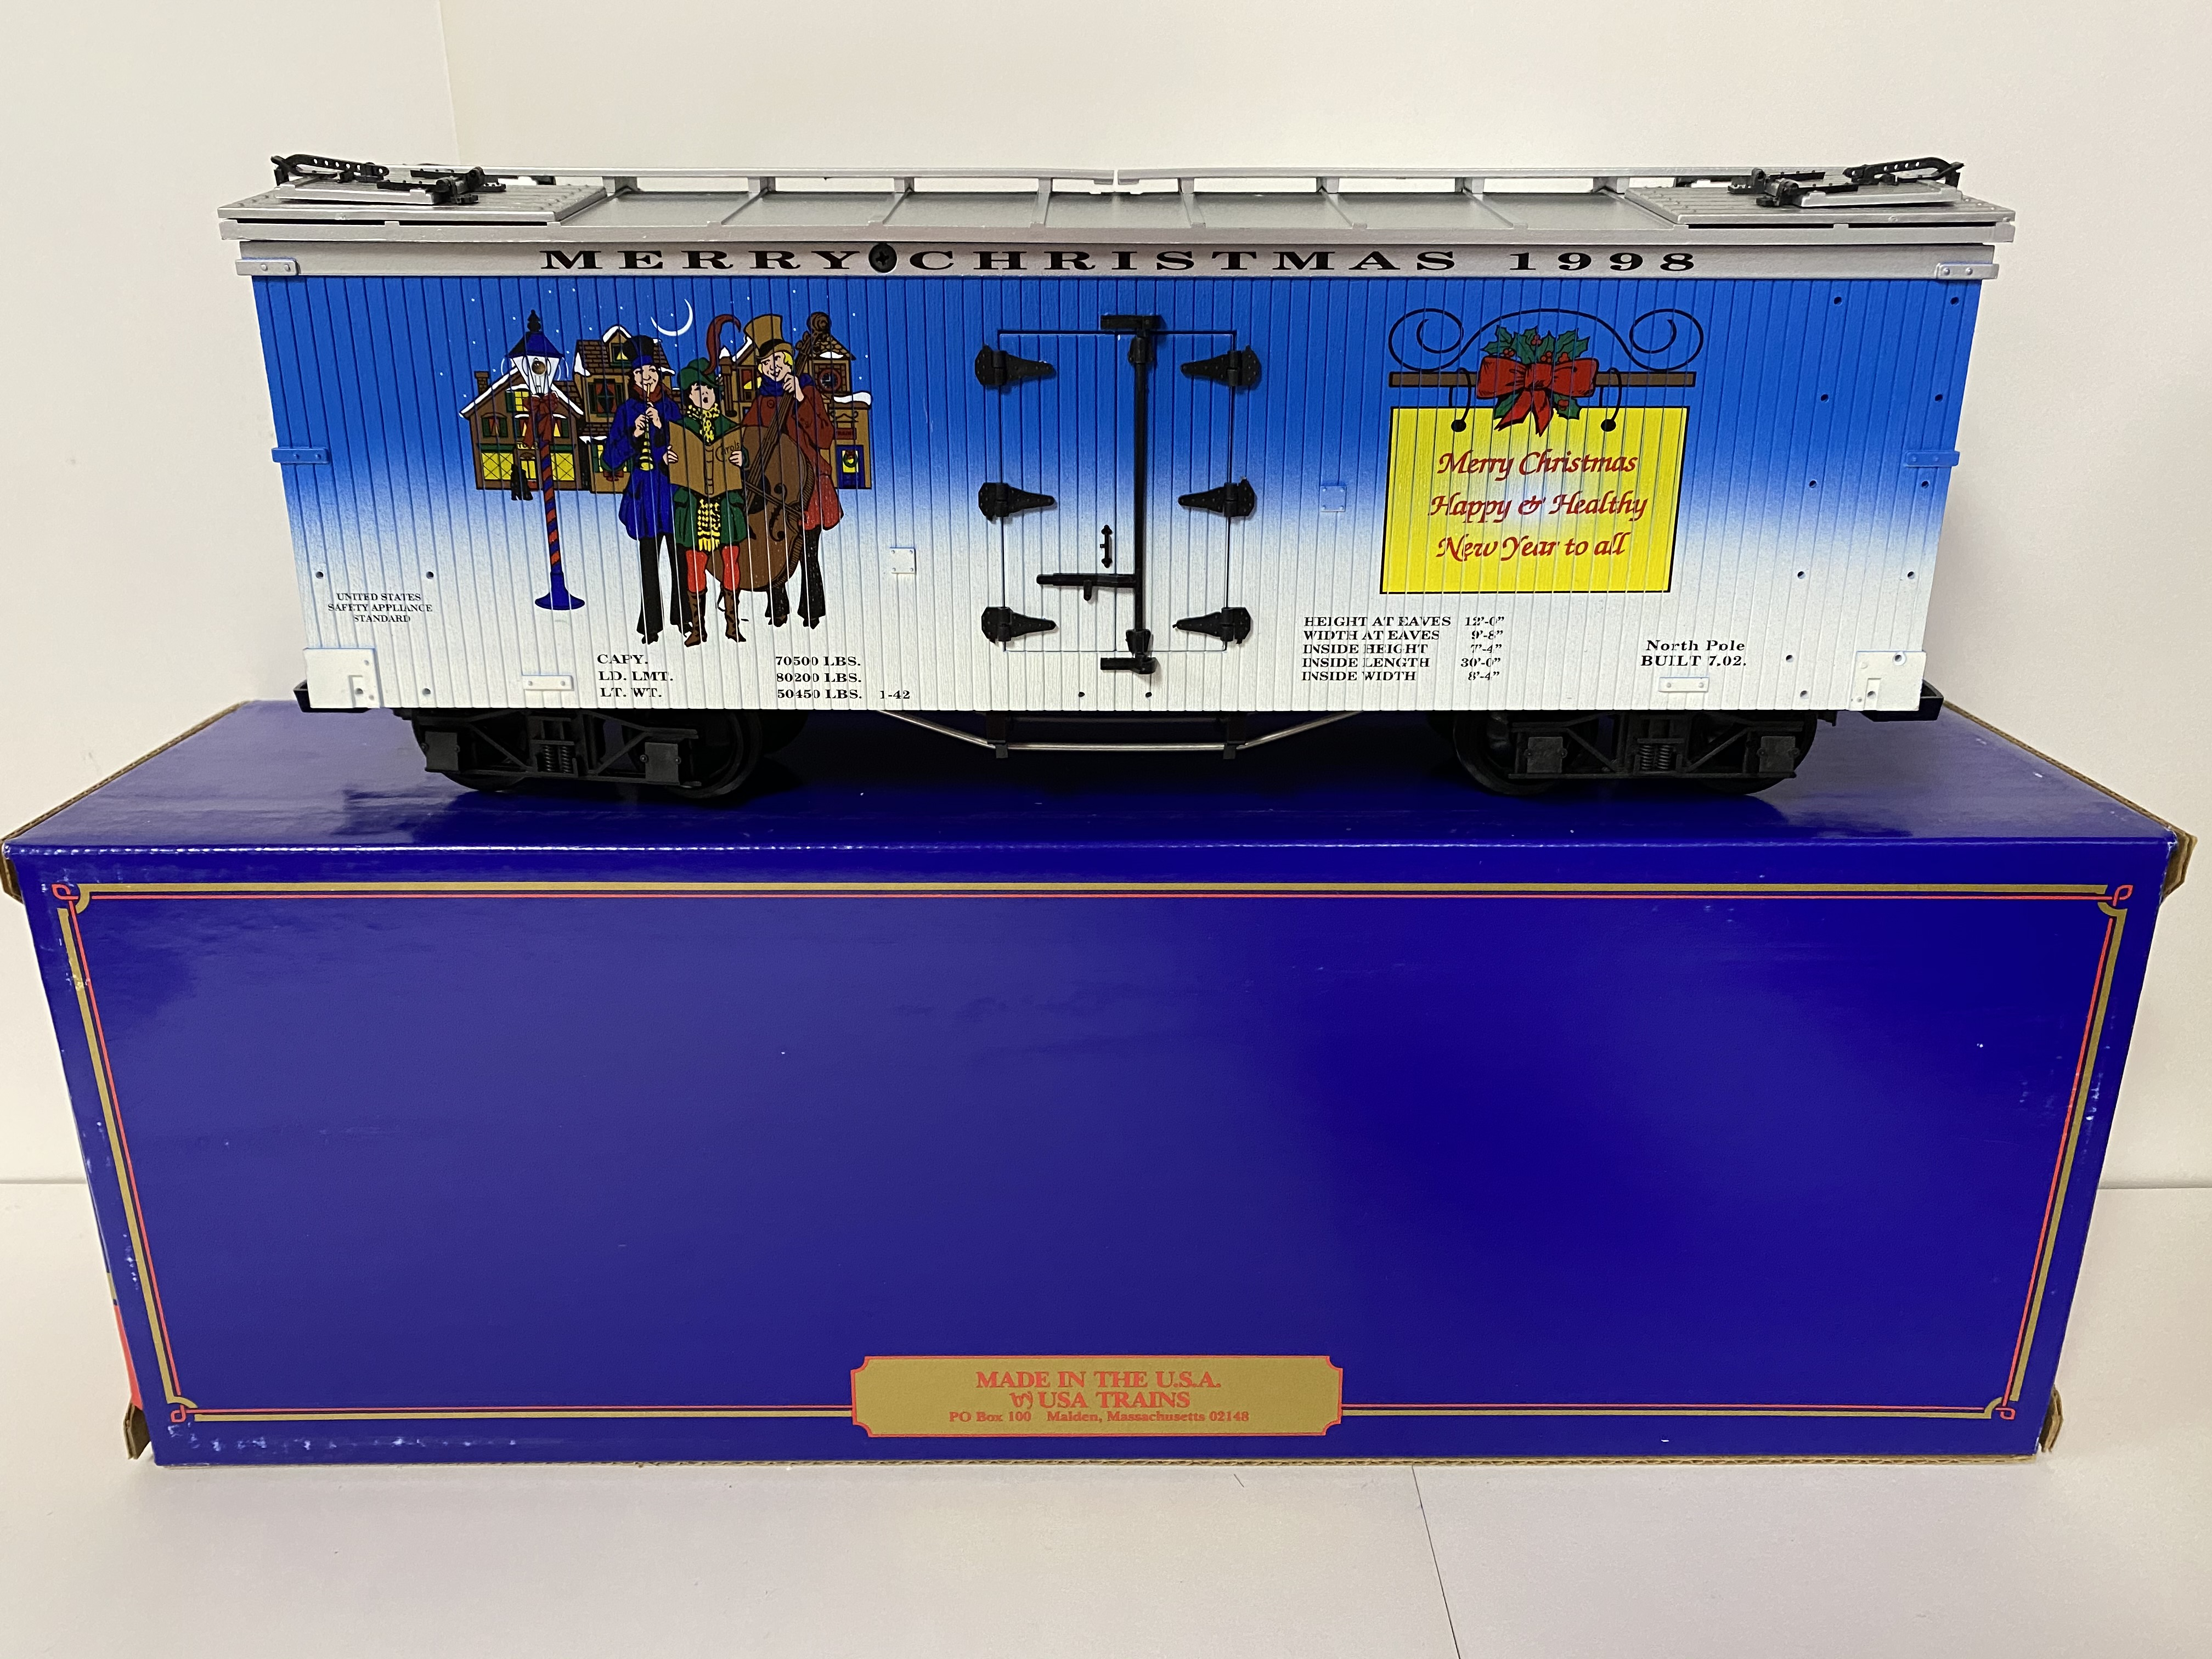 1998 Christmas Reefer (USA Trains 13016)